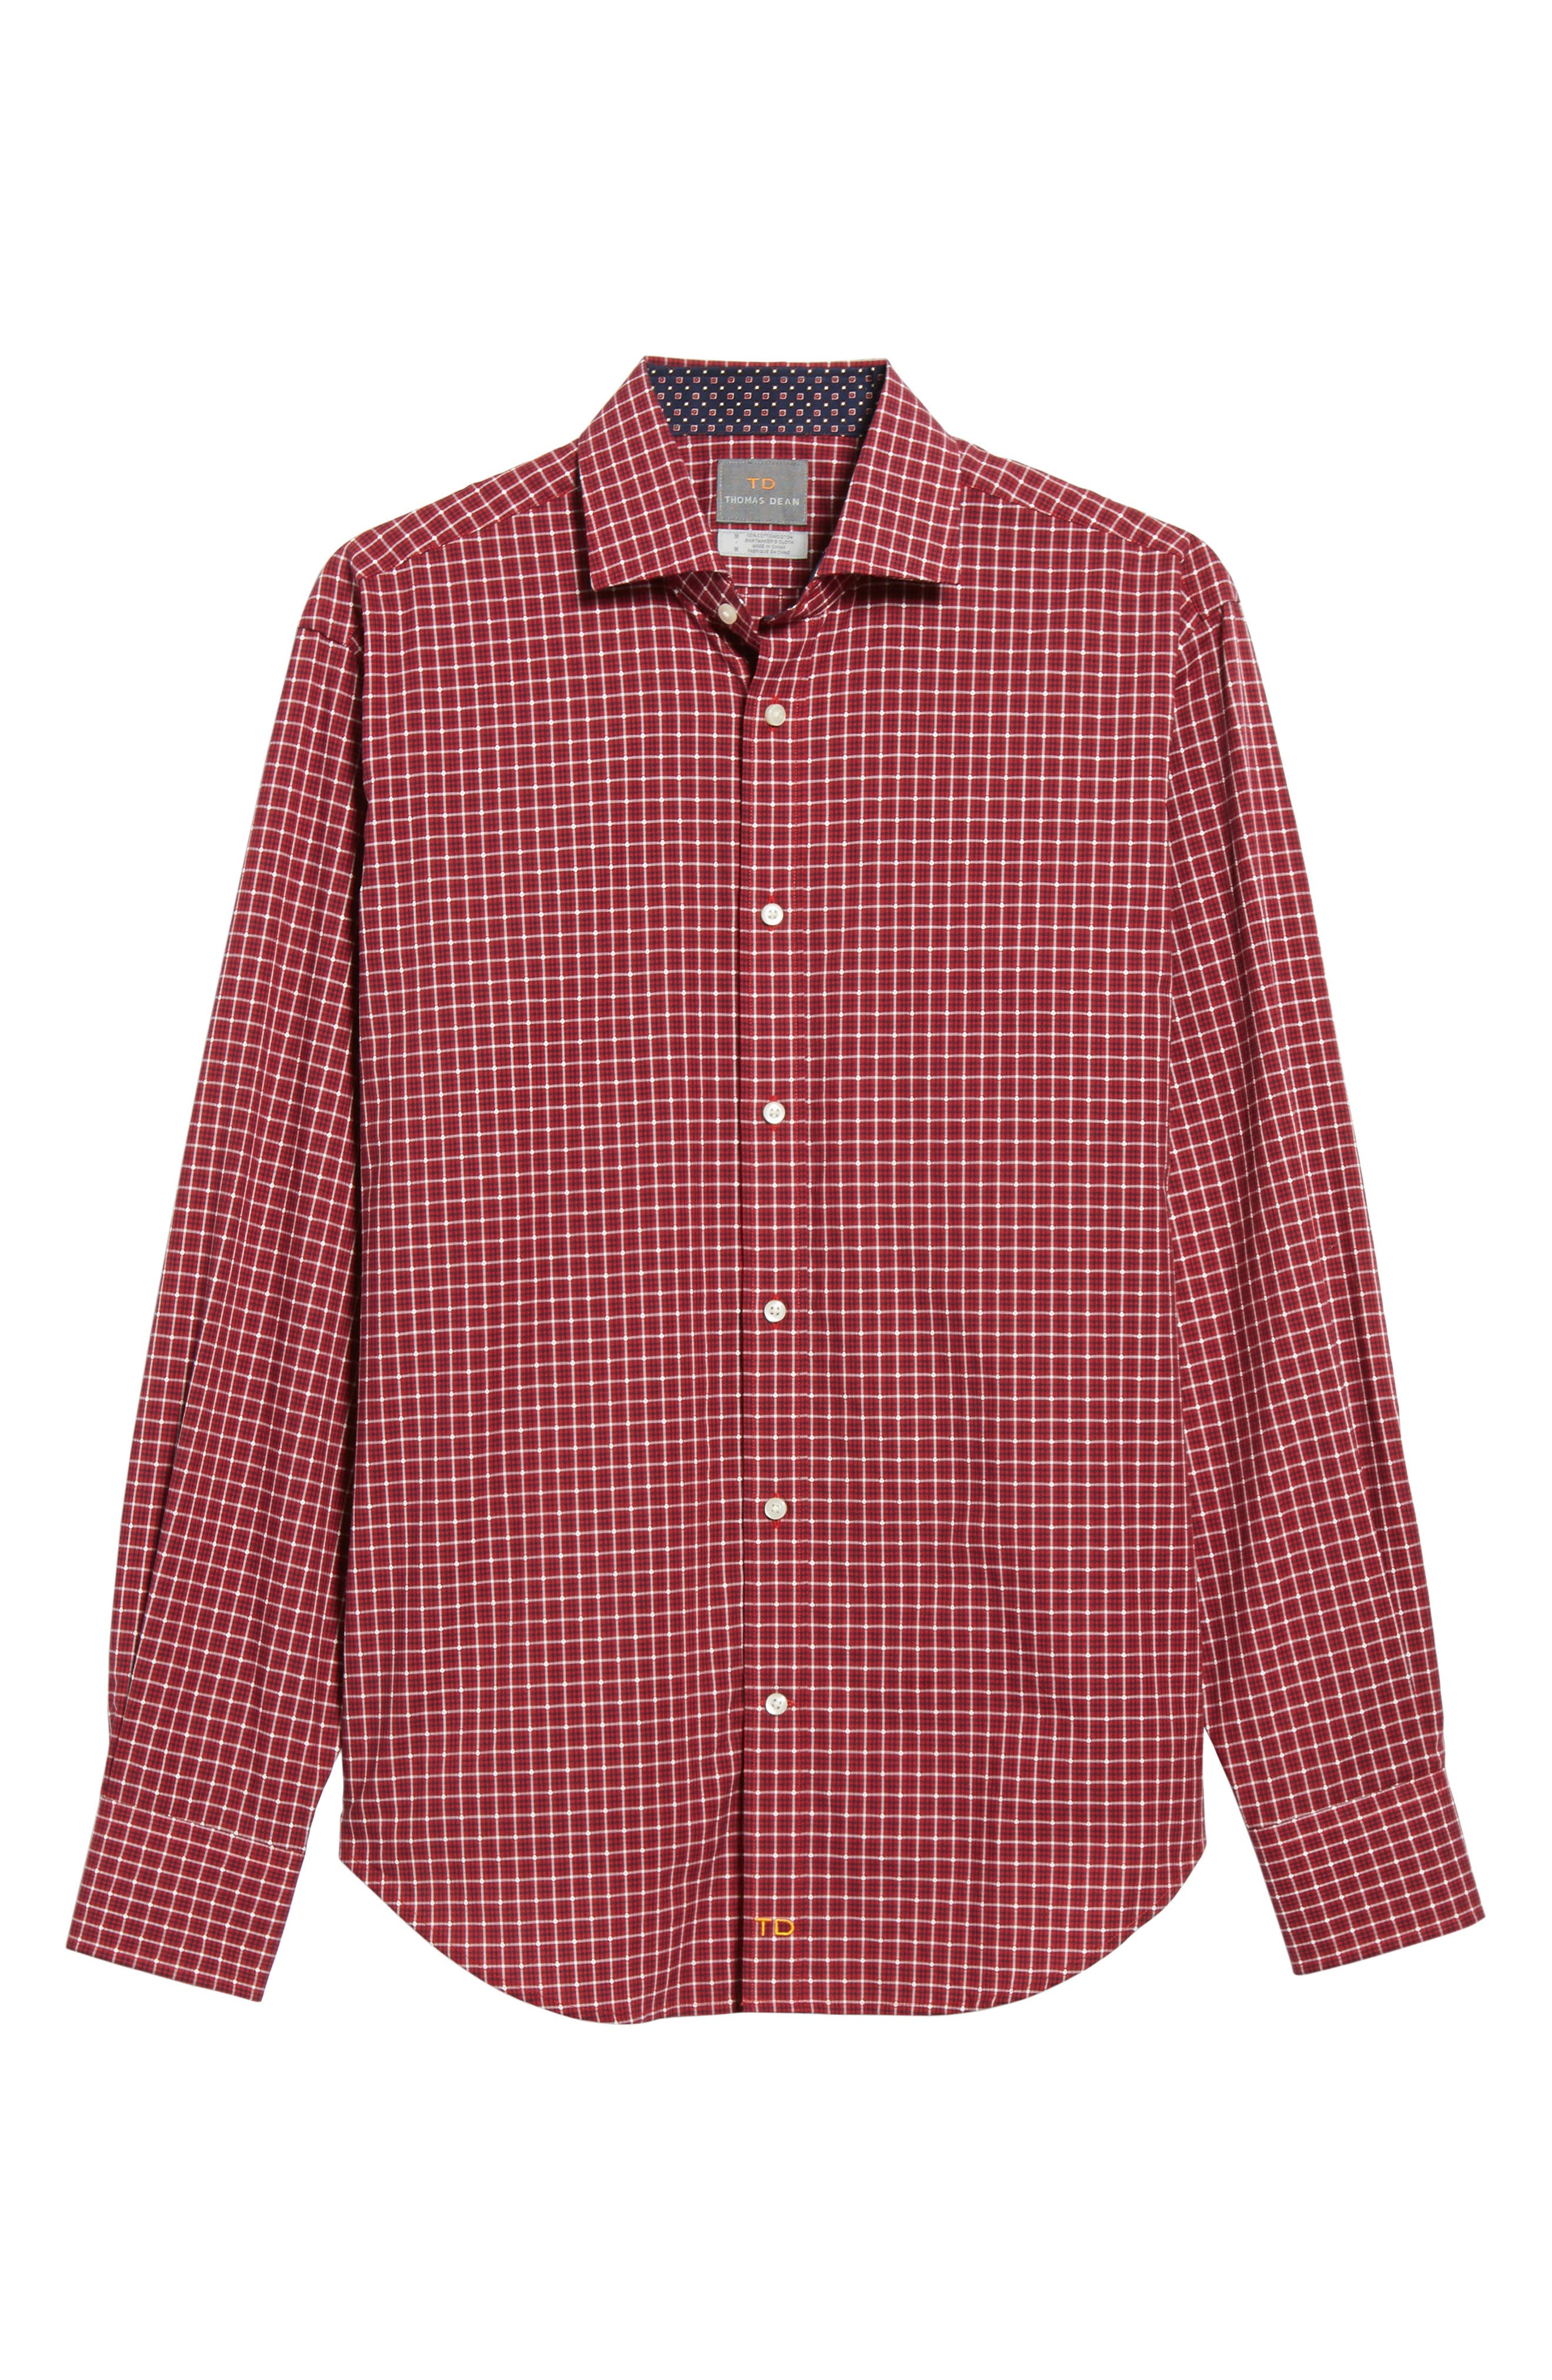 Regular Fit Plaid Sport Shirt,                             Alternate thumbnail 6, color,                             600